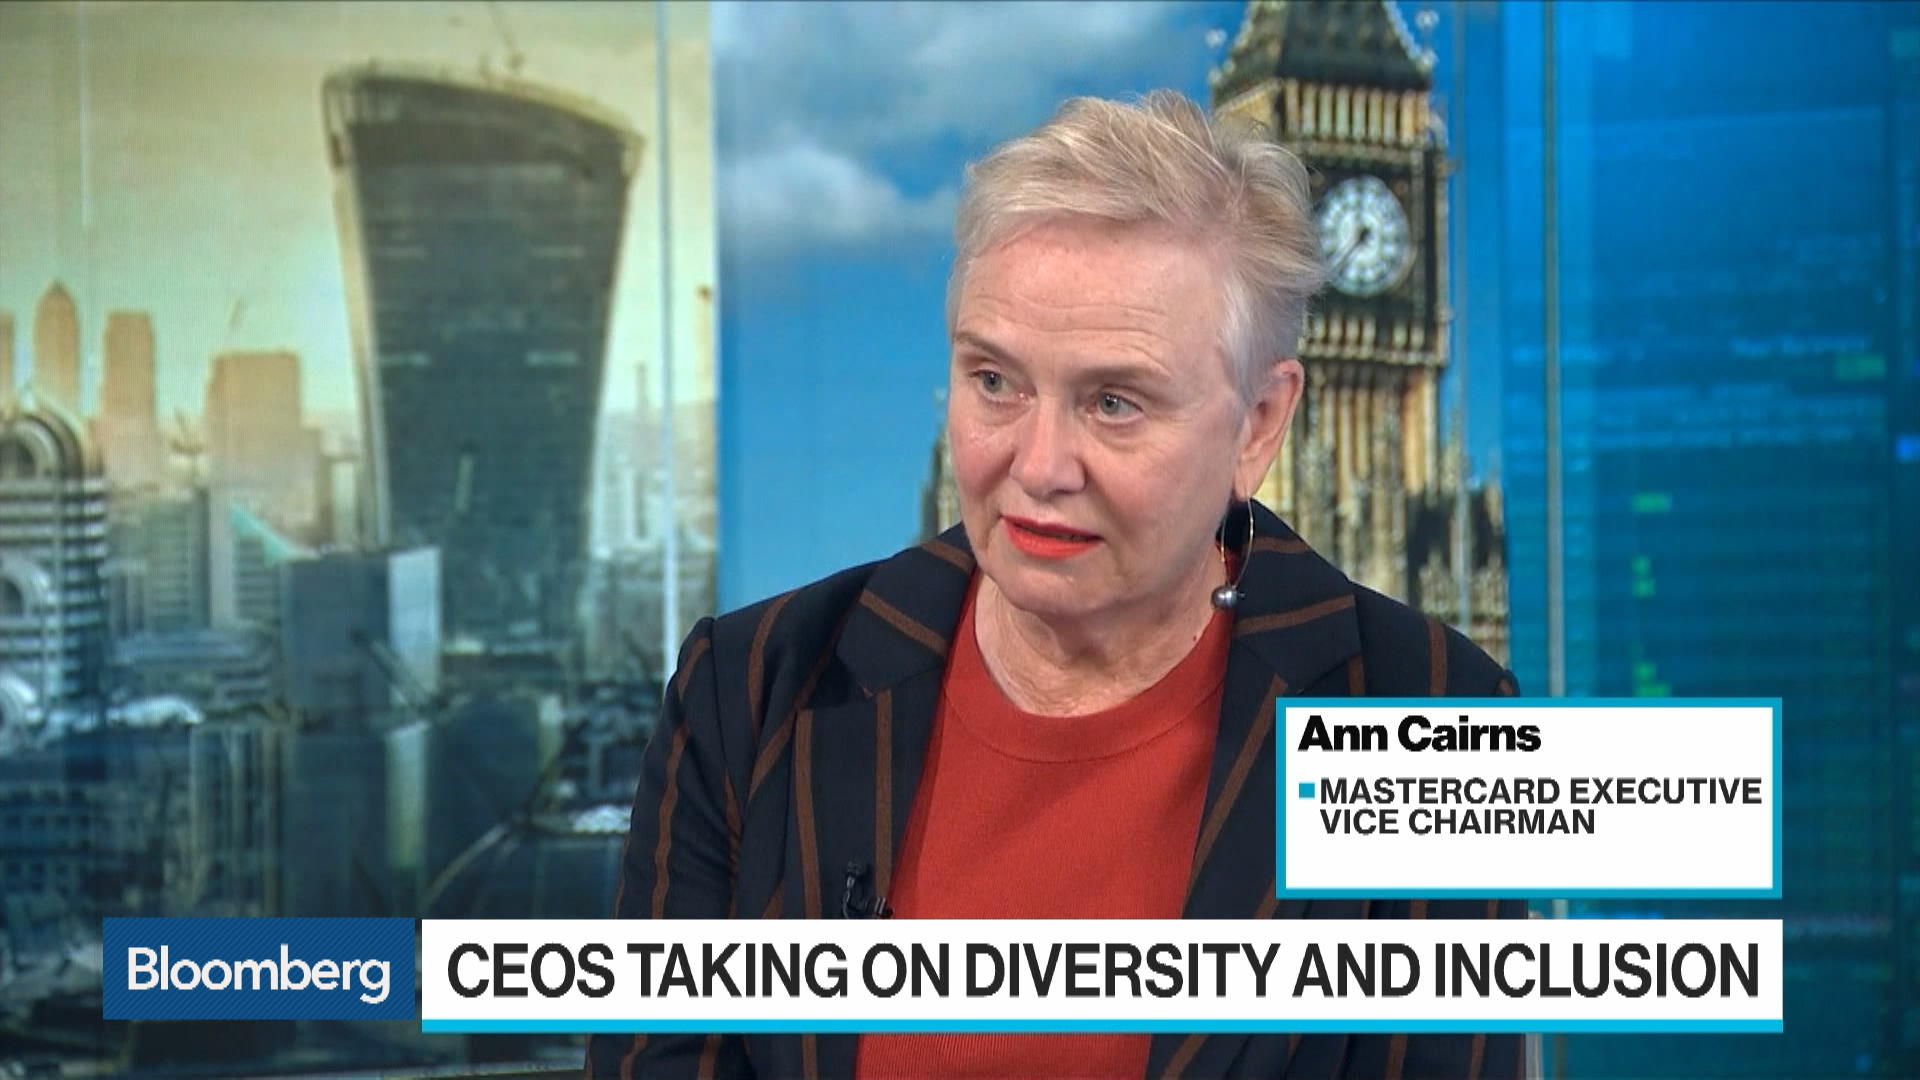 Mastercard 's Cairns: Financial Services Are Behind on Diversity and Inclusion